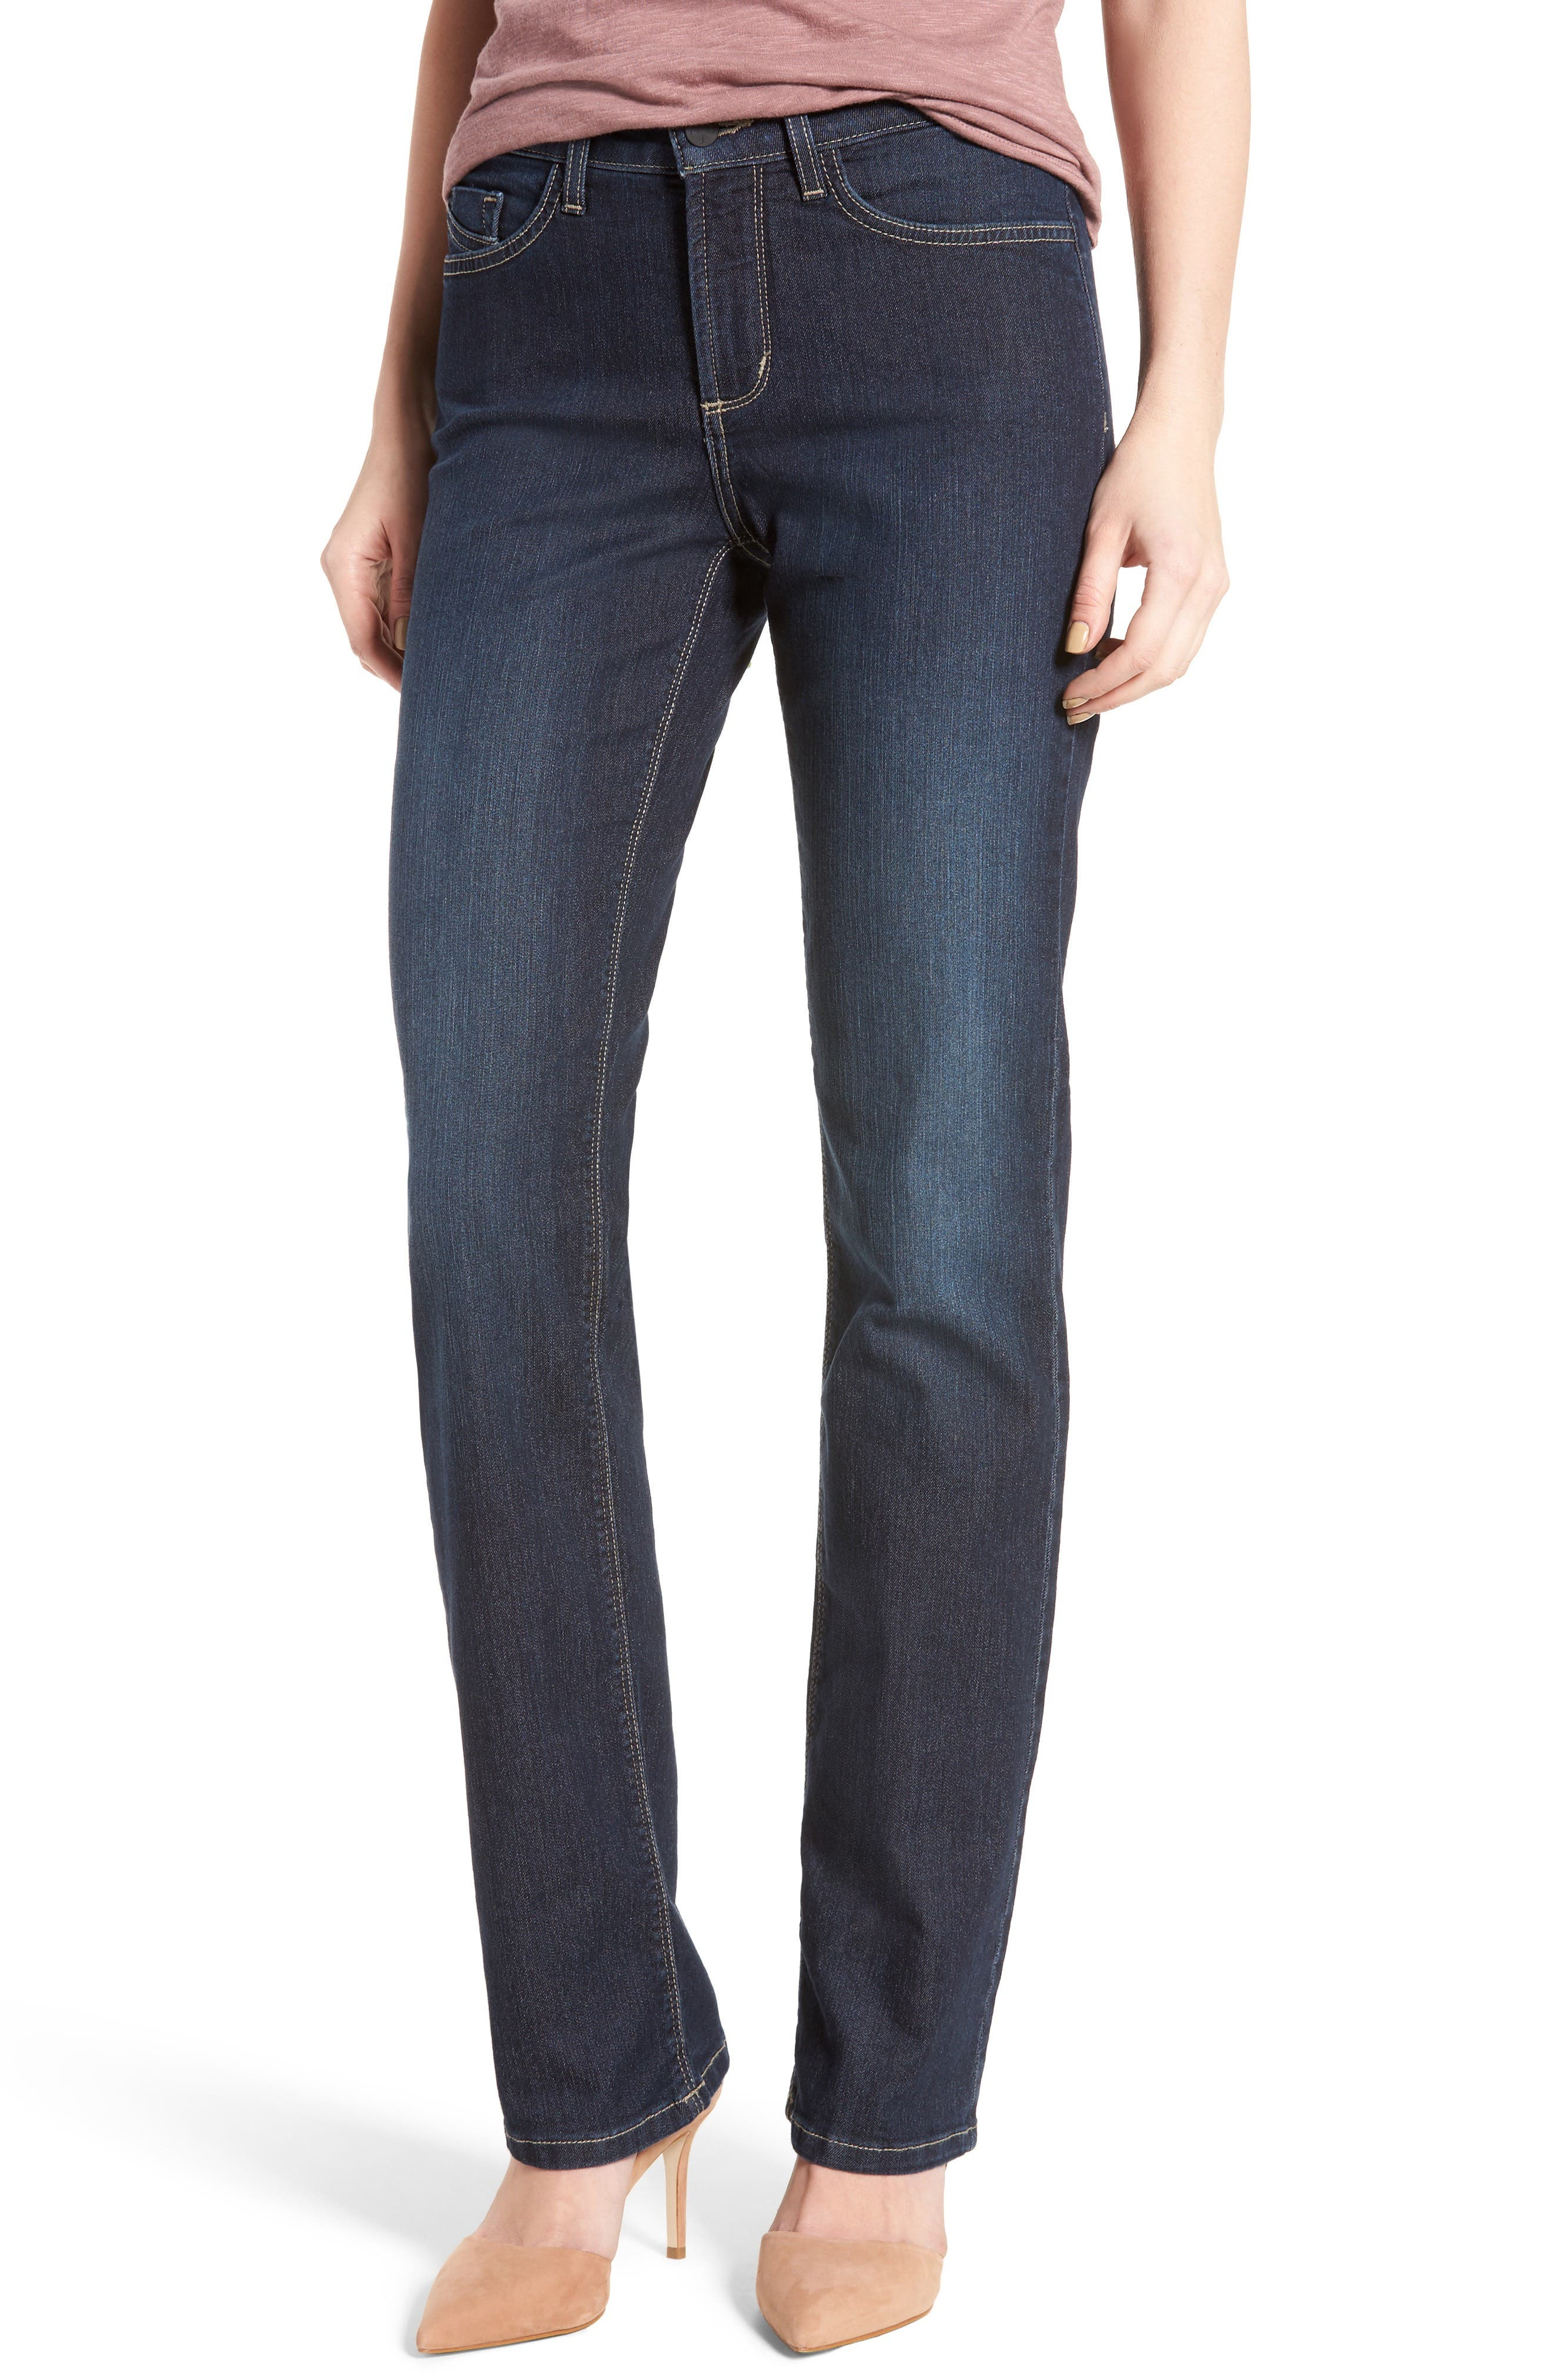 Marilyn Stretch Straight Leg Jeans,                             Main thumbnail 1, color,                             Hollywood Wash